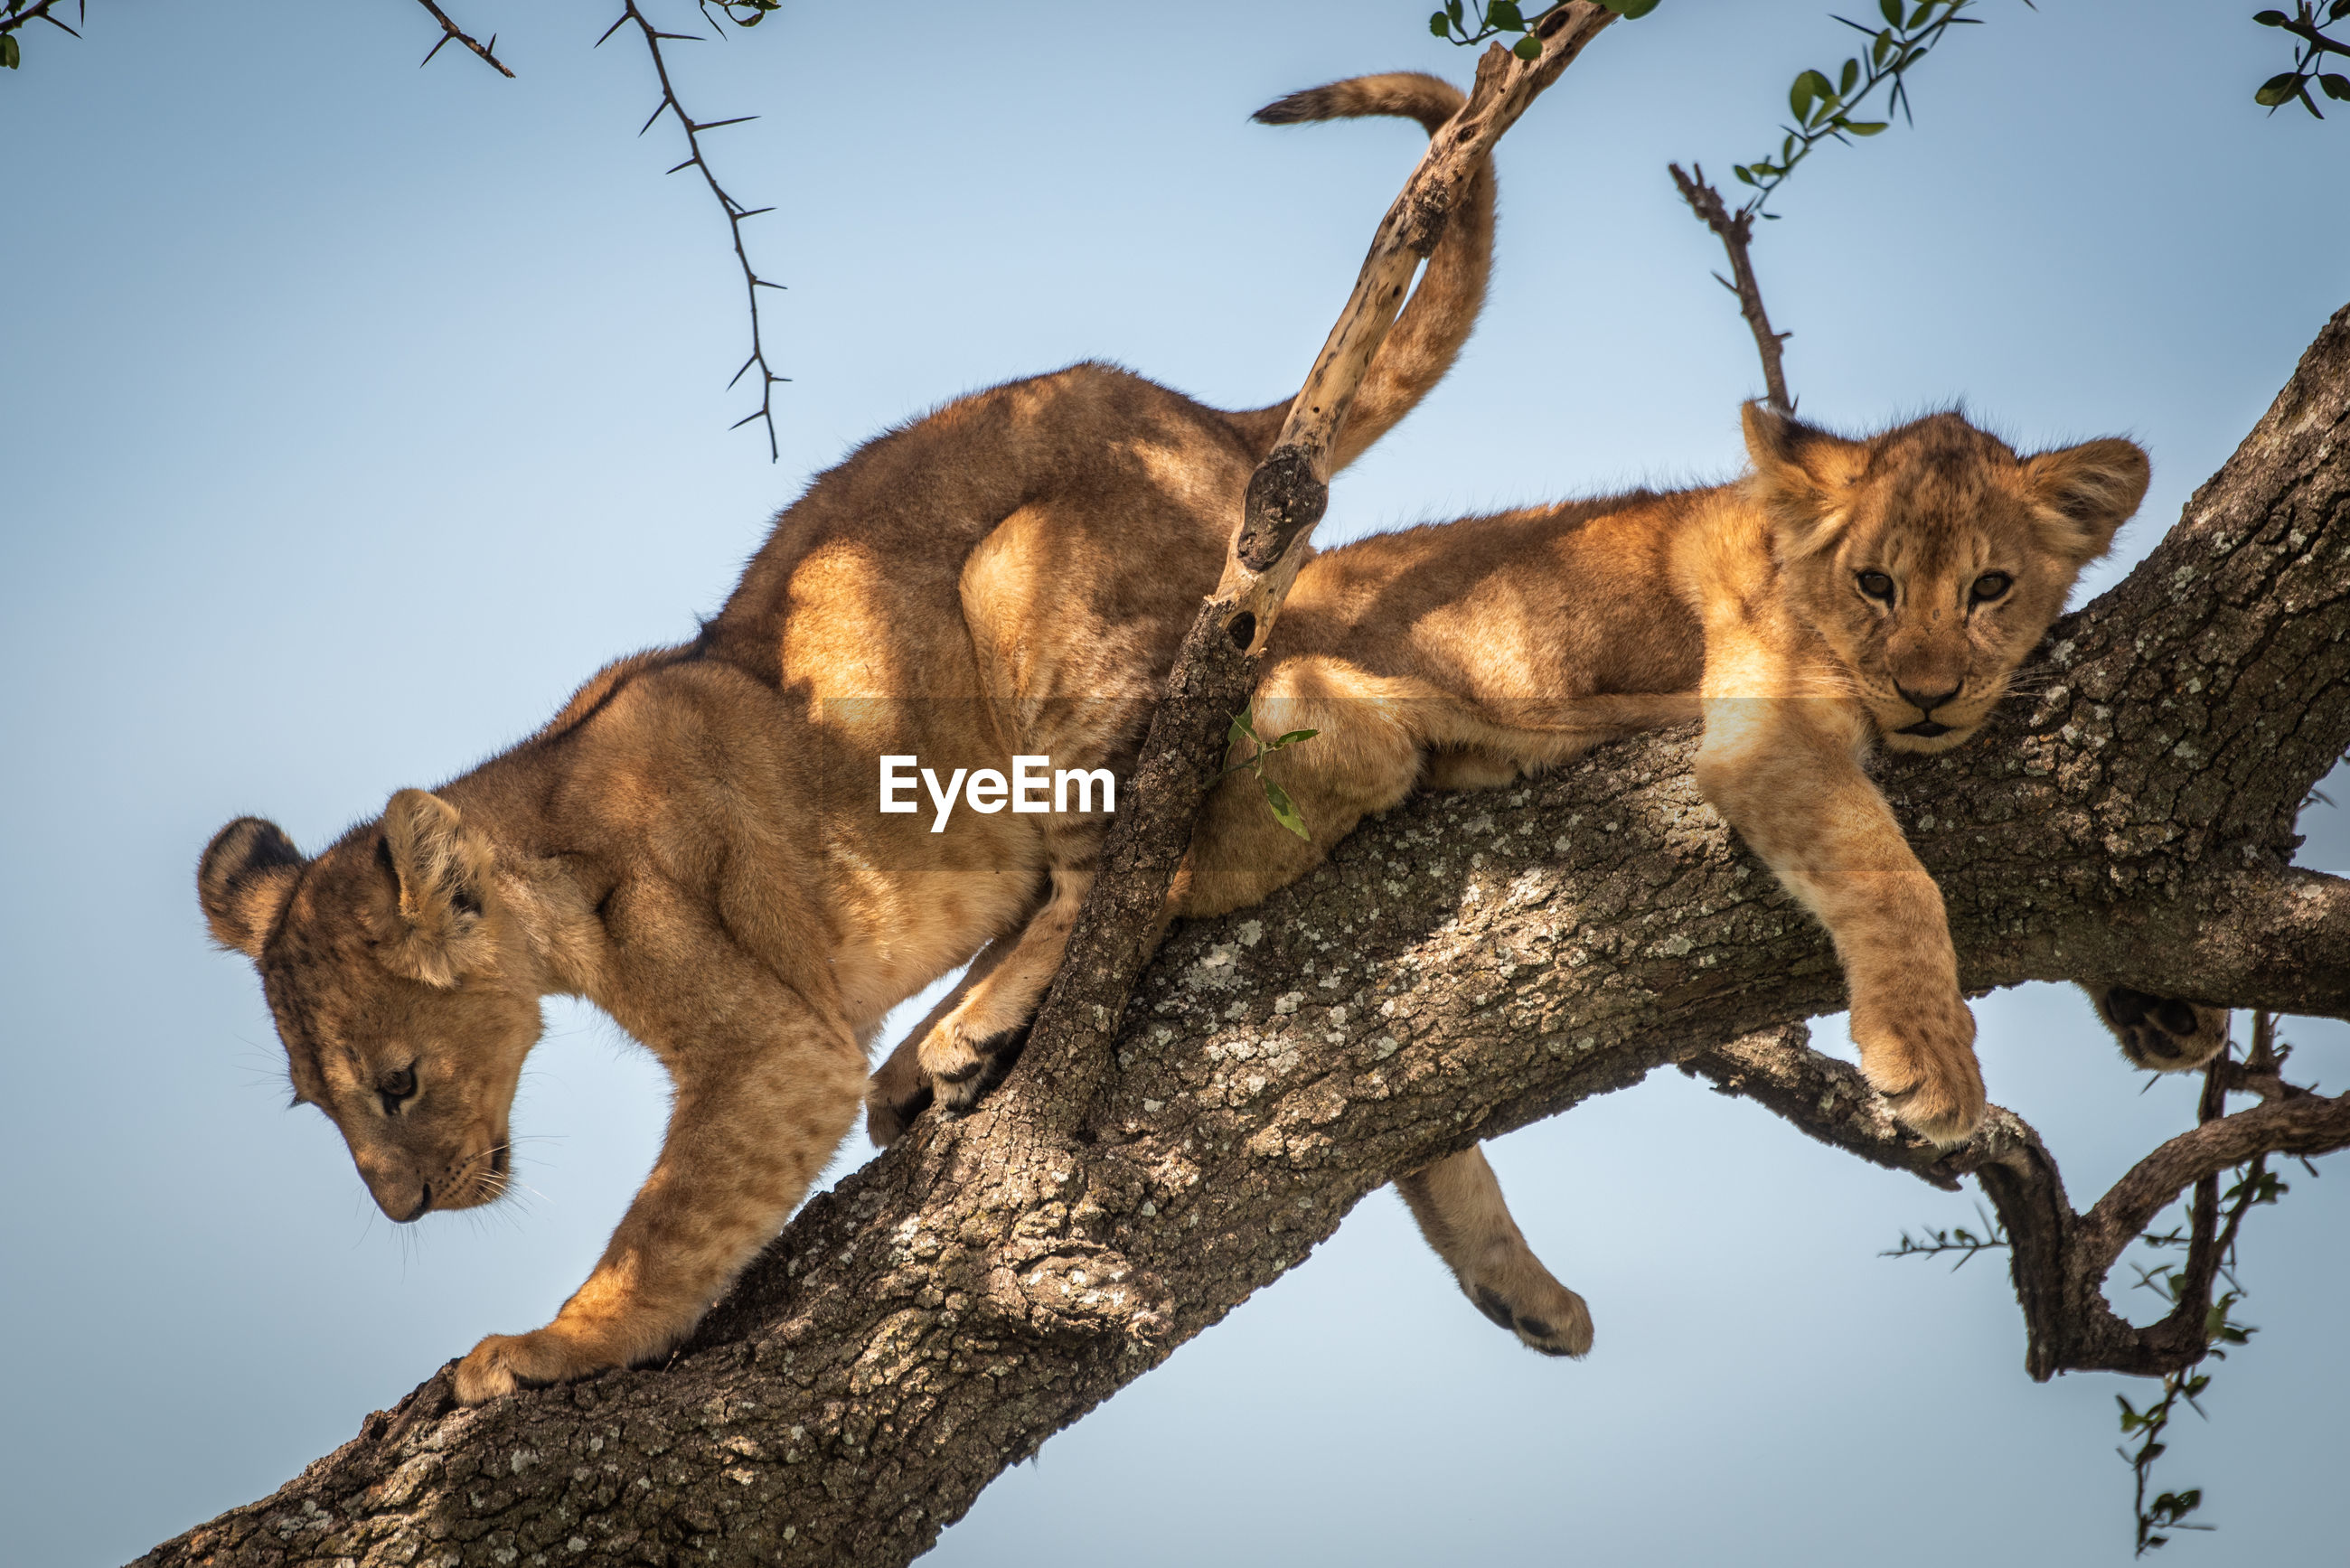 Low angle view of lion cubs resting on tree trunk